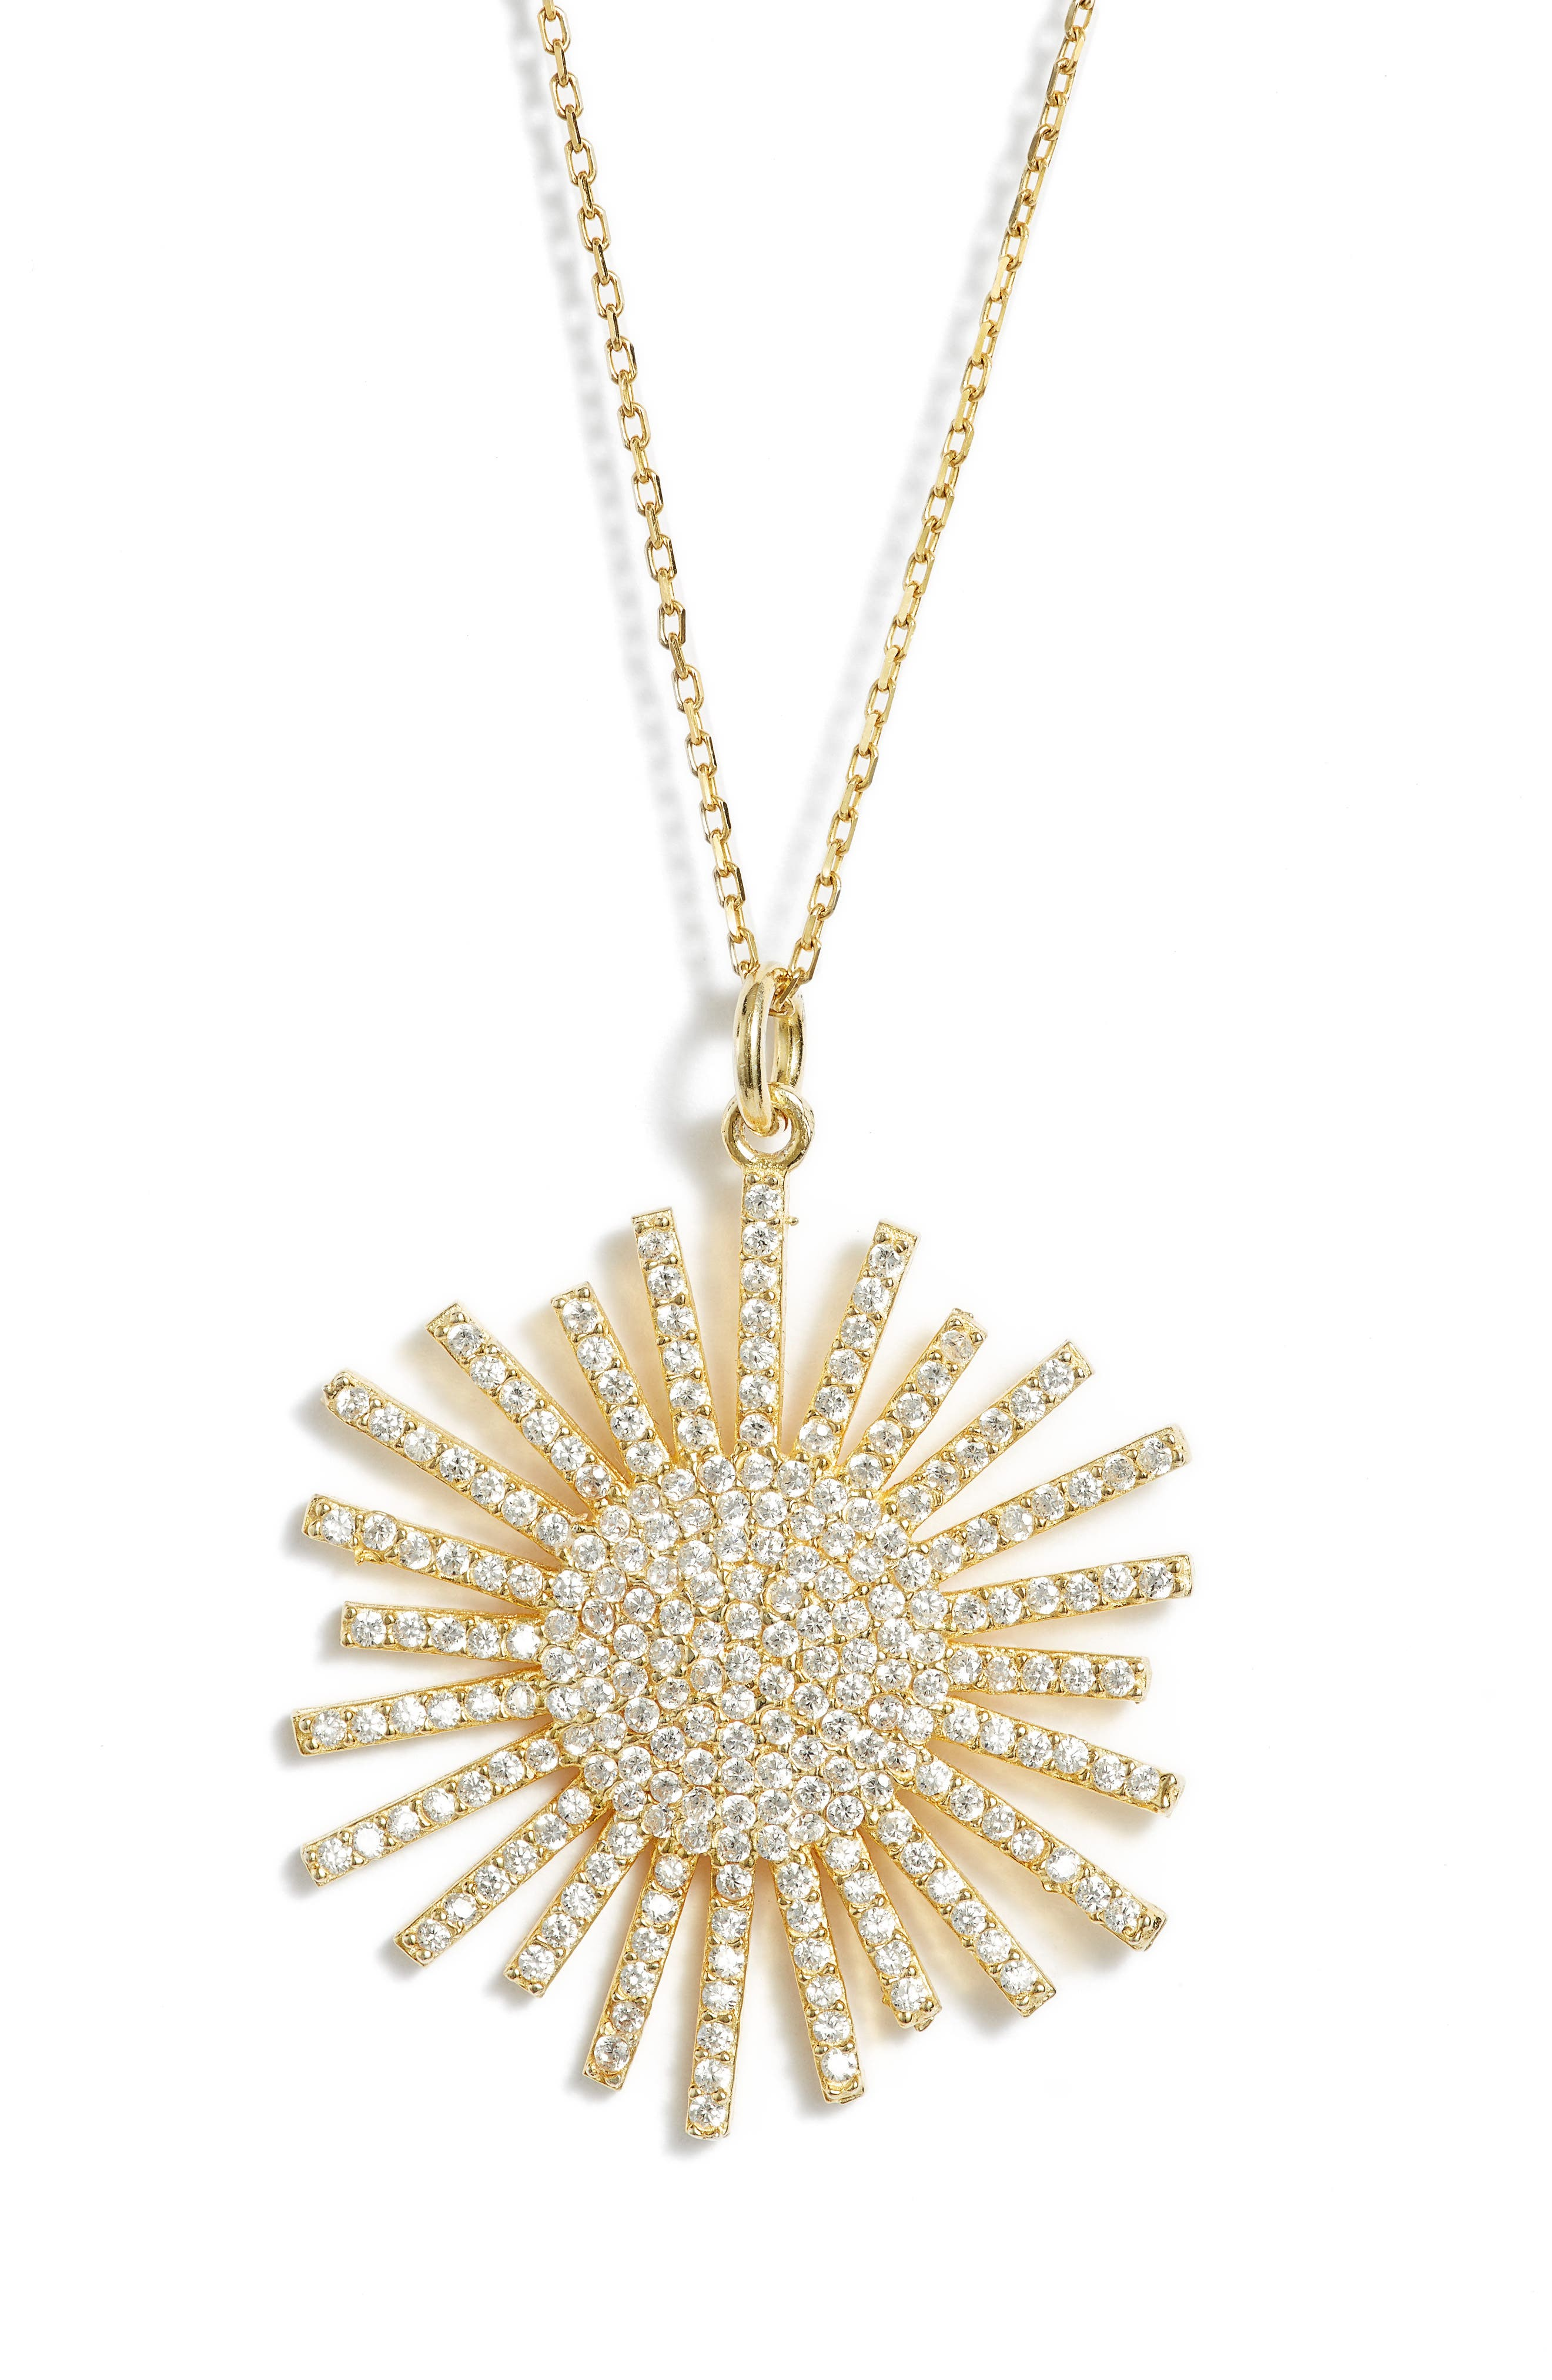 Crystal Starburst Necklace,                             Main thumbnail 1, color,                             Gold